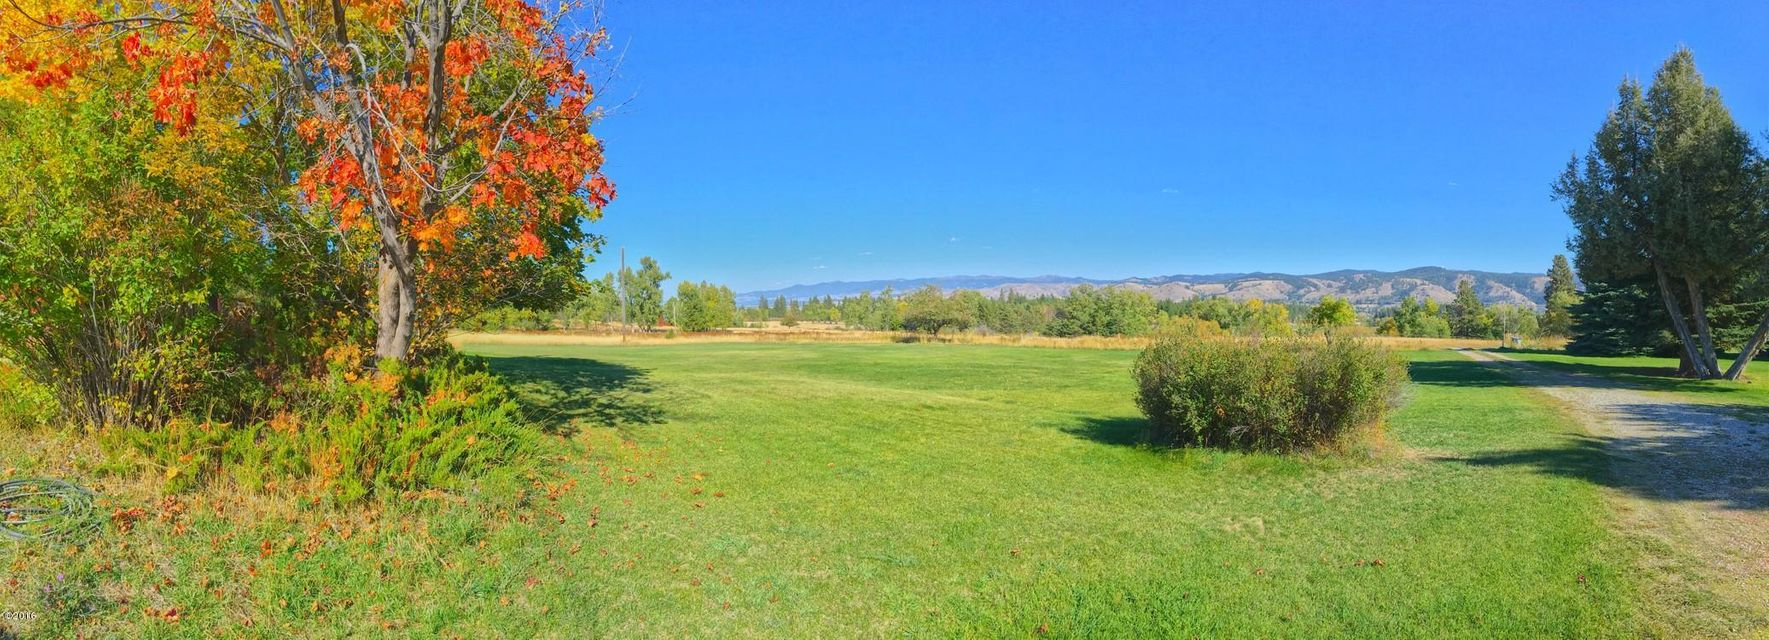 Additional photo for property listing at The Stage Stop Ranch 360  Fleet Street Hamilton, Montana,59840 Amerika Birleşik Devletleri